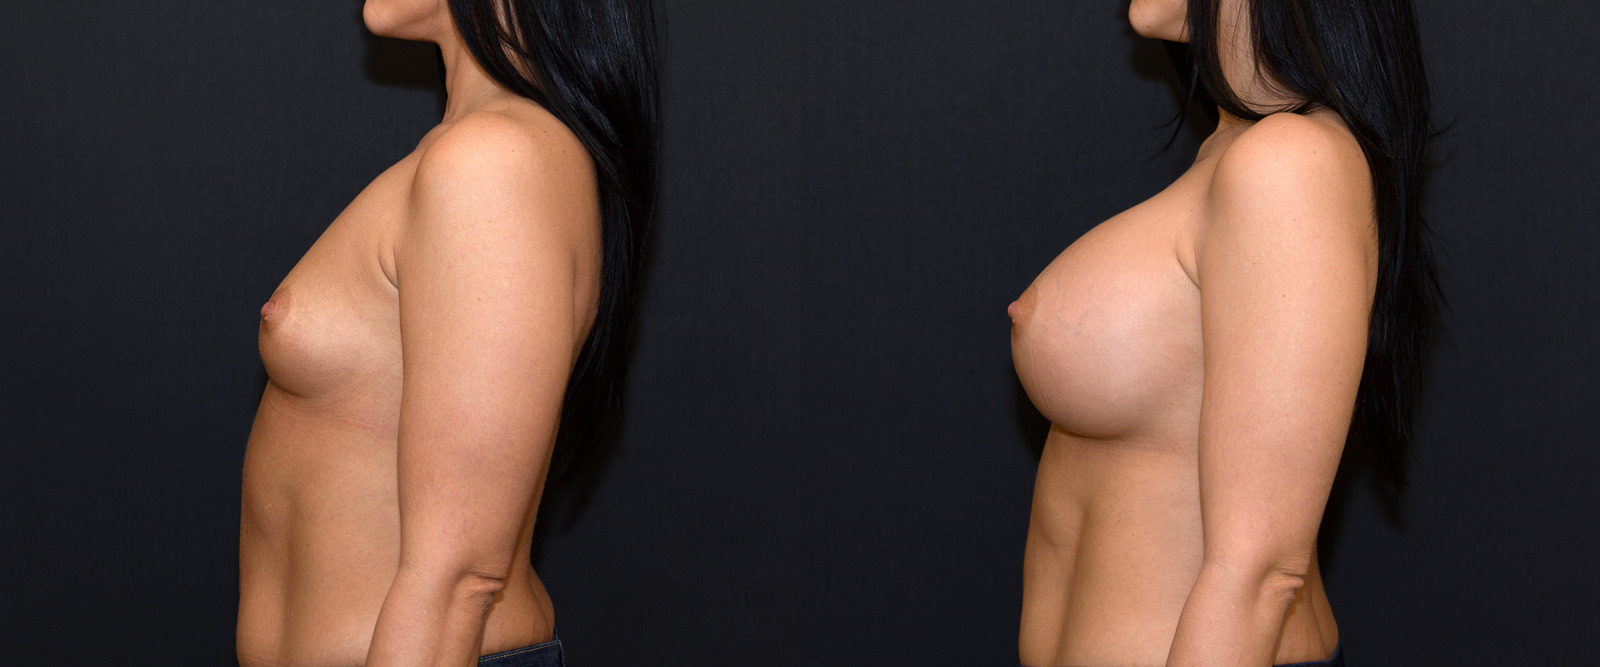 large-breast-augmentation-750cc-dd-cup-before-after-3.jpg